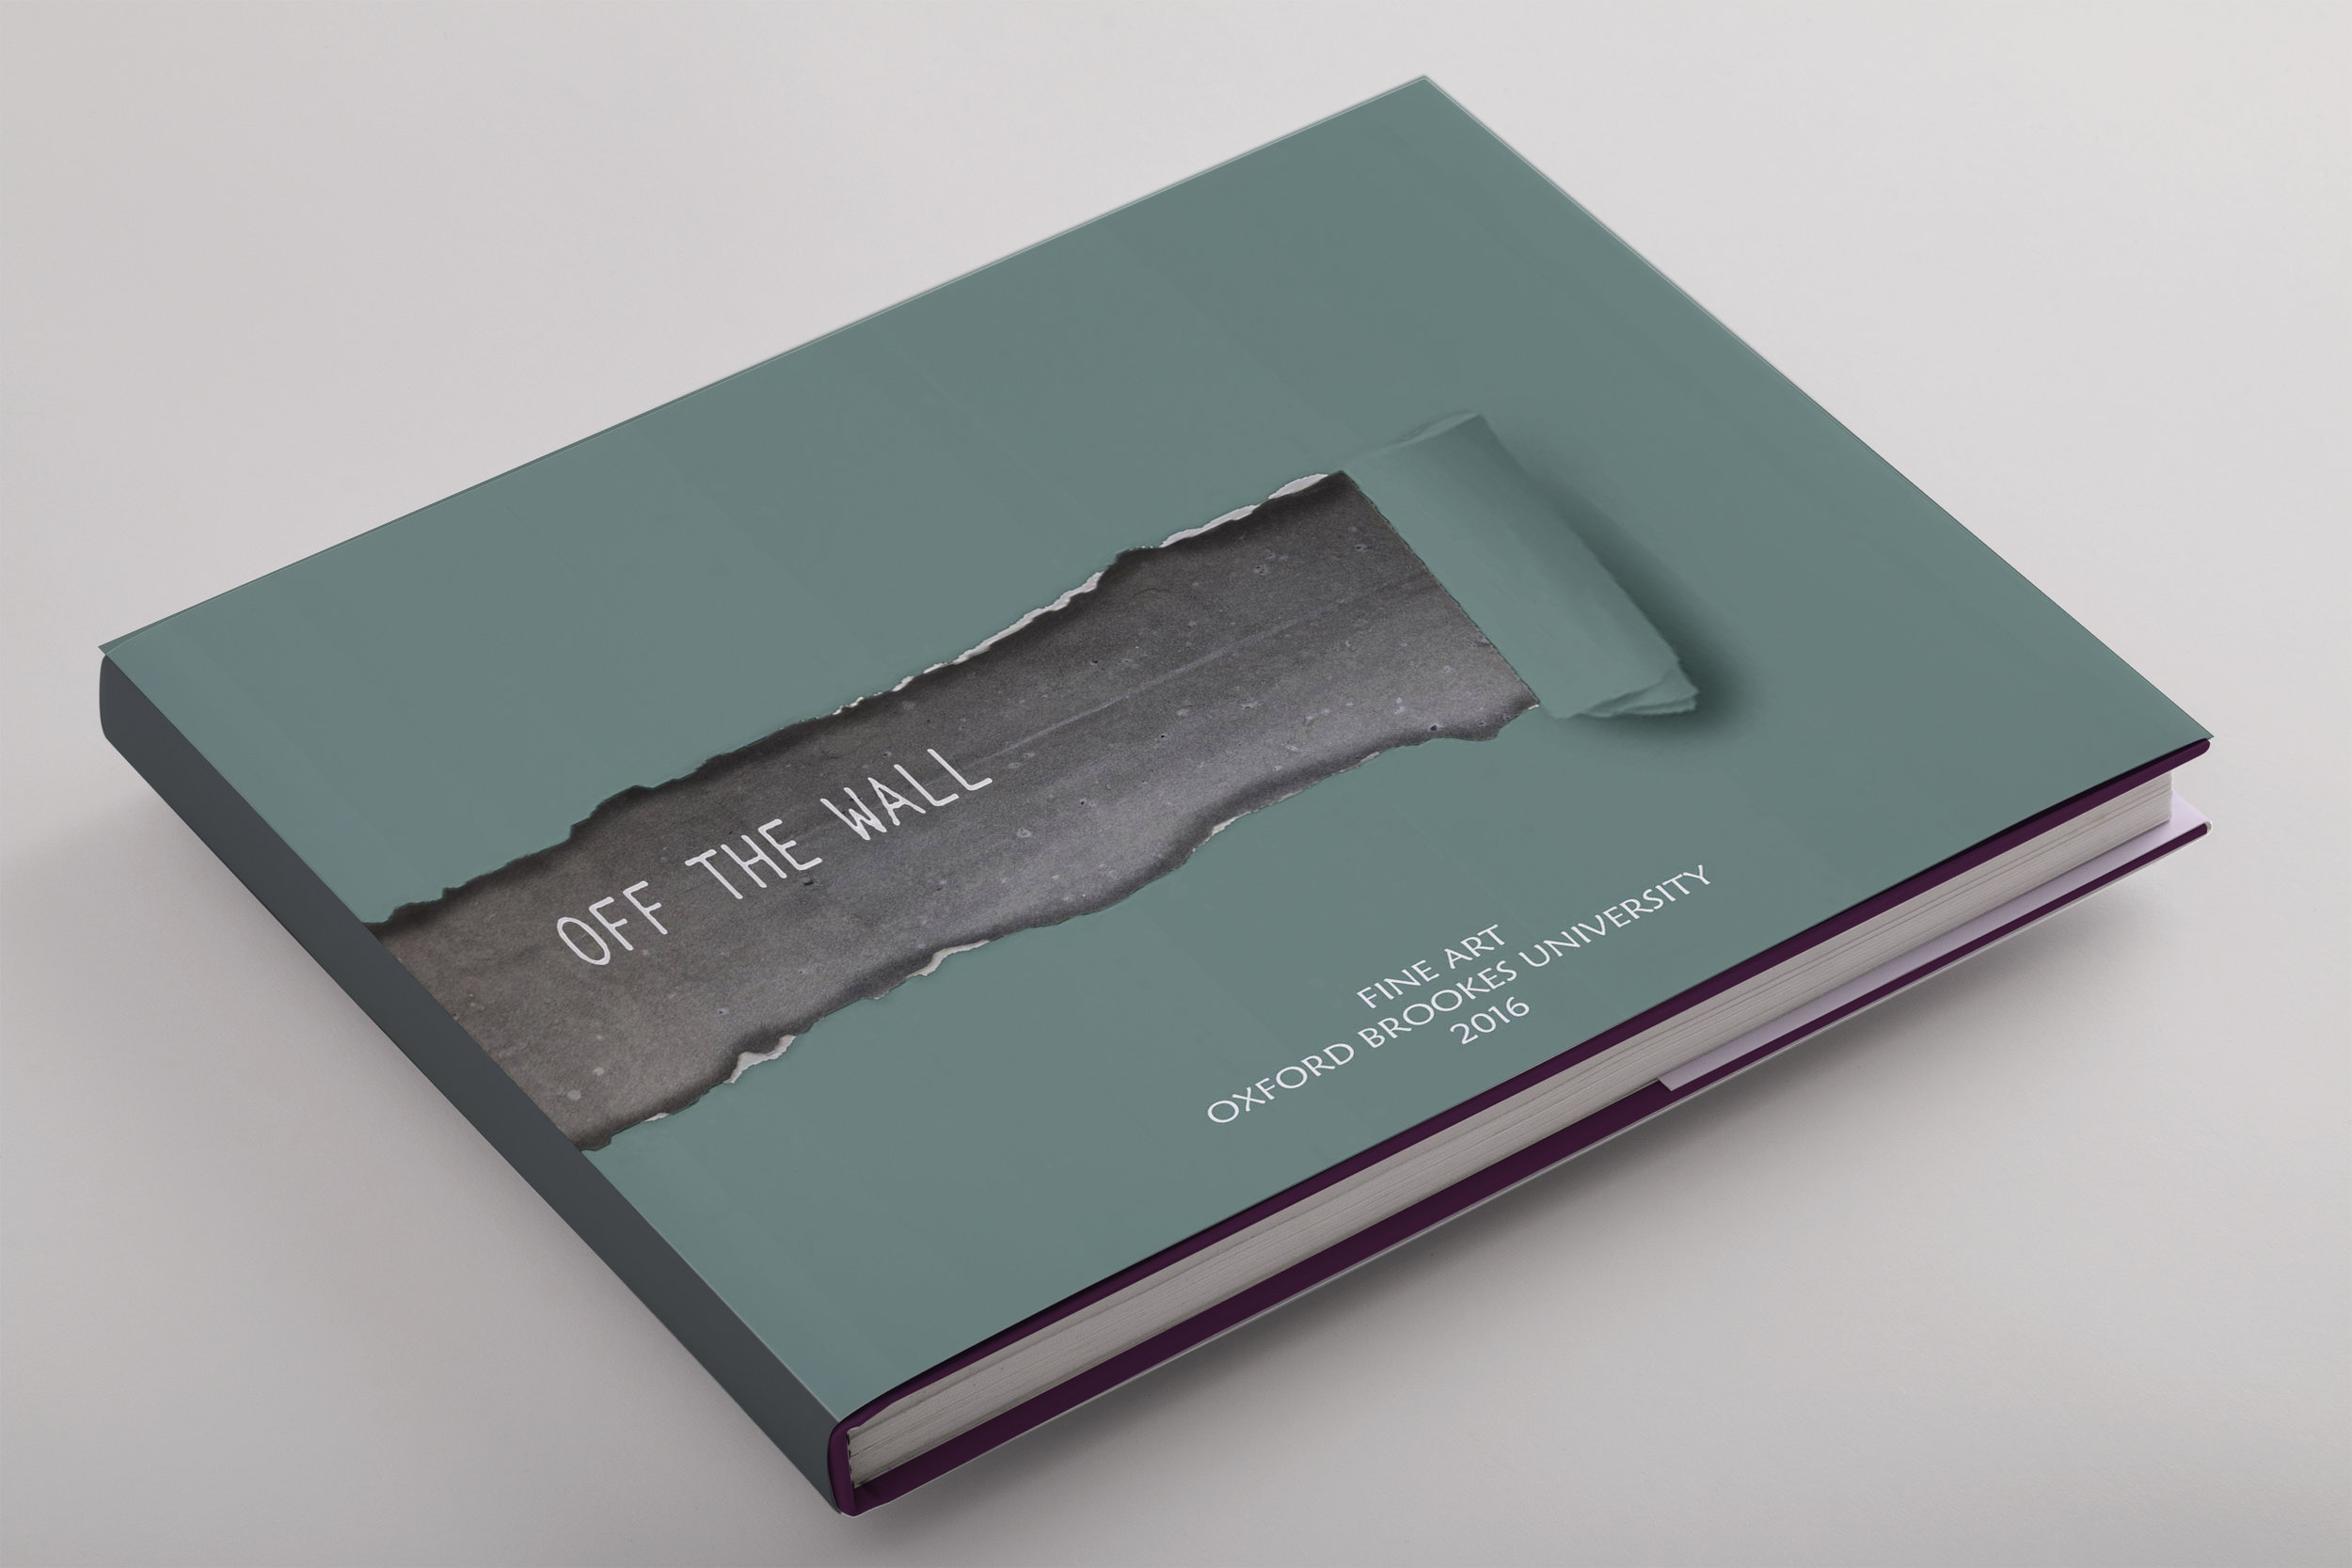 Off The Wall - Exhibition Branding